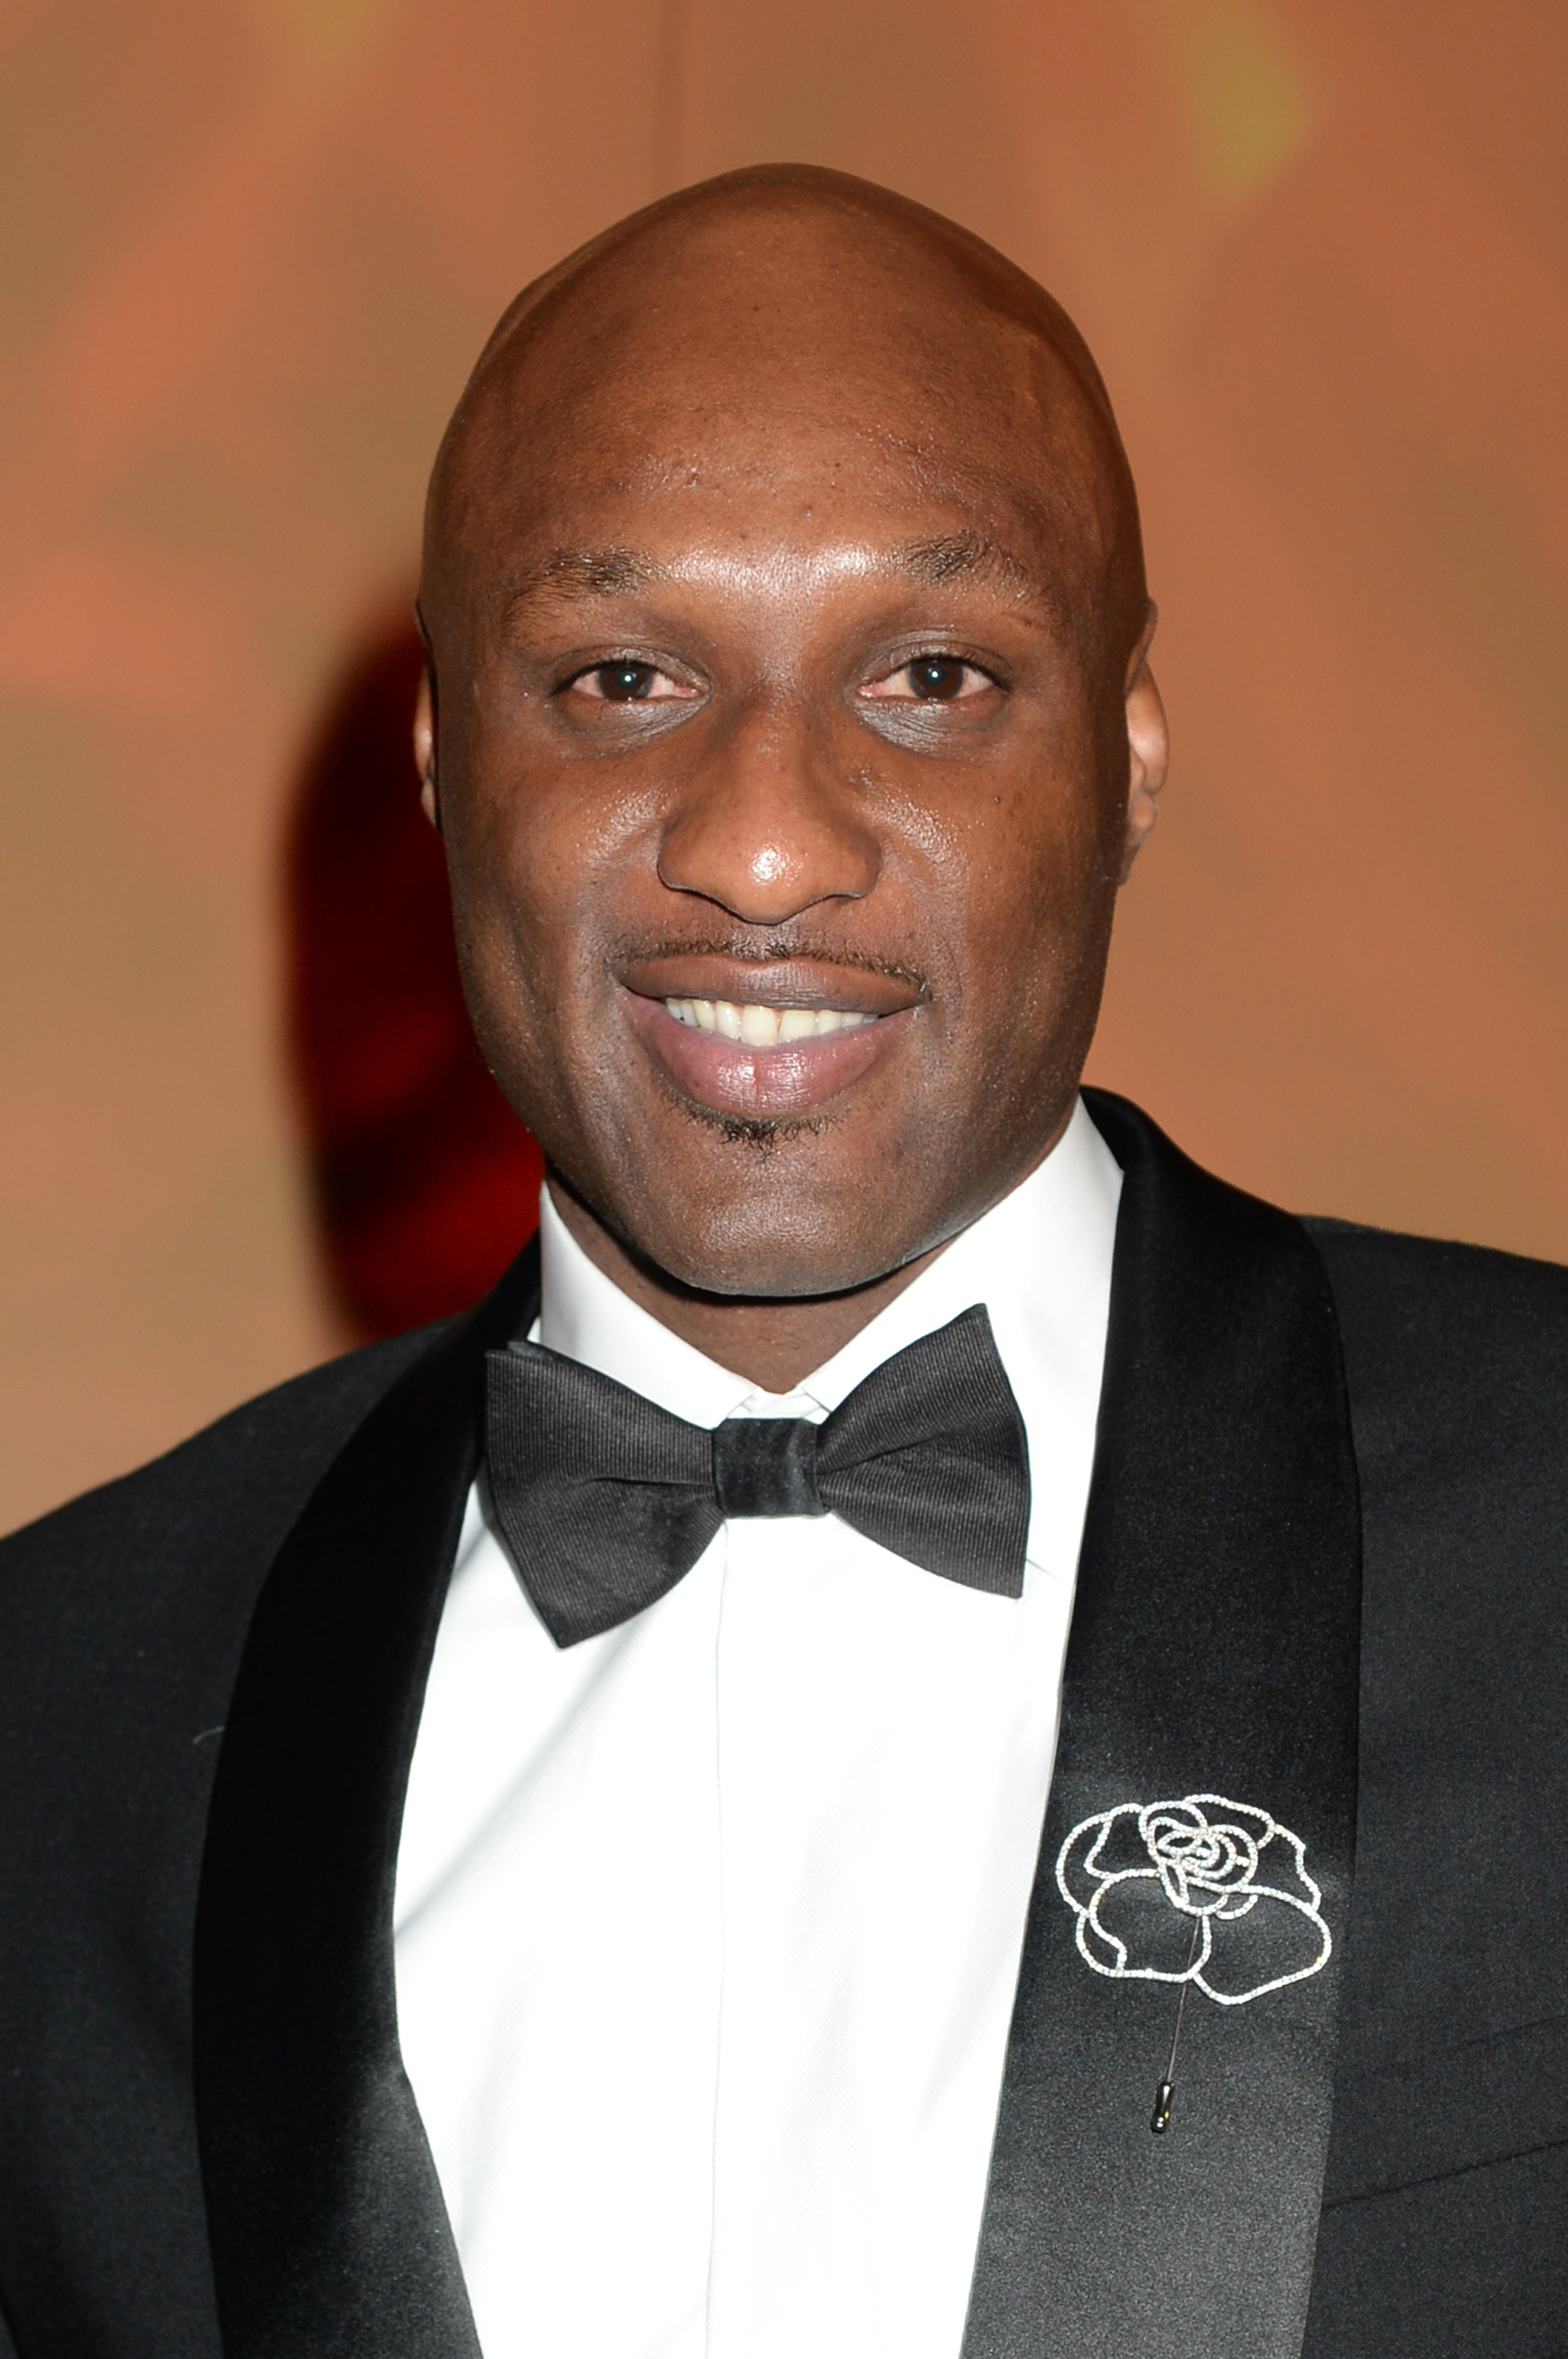 Professional basketball player Lamar Odom attends HBO's Official Golden Globe Awards After Party at The Beverly Hilton Hotel in Beverly Hills, Calif., on Jan. 12, 2014